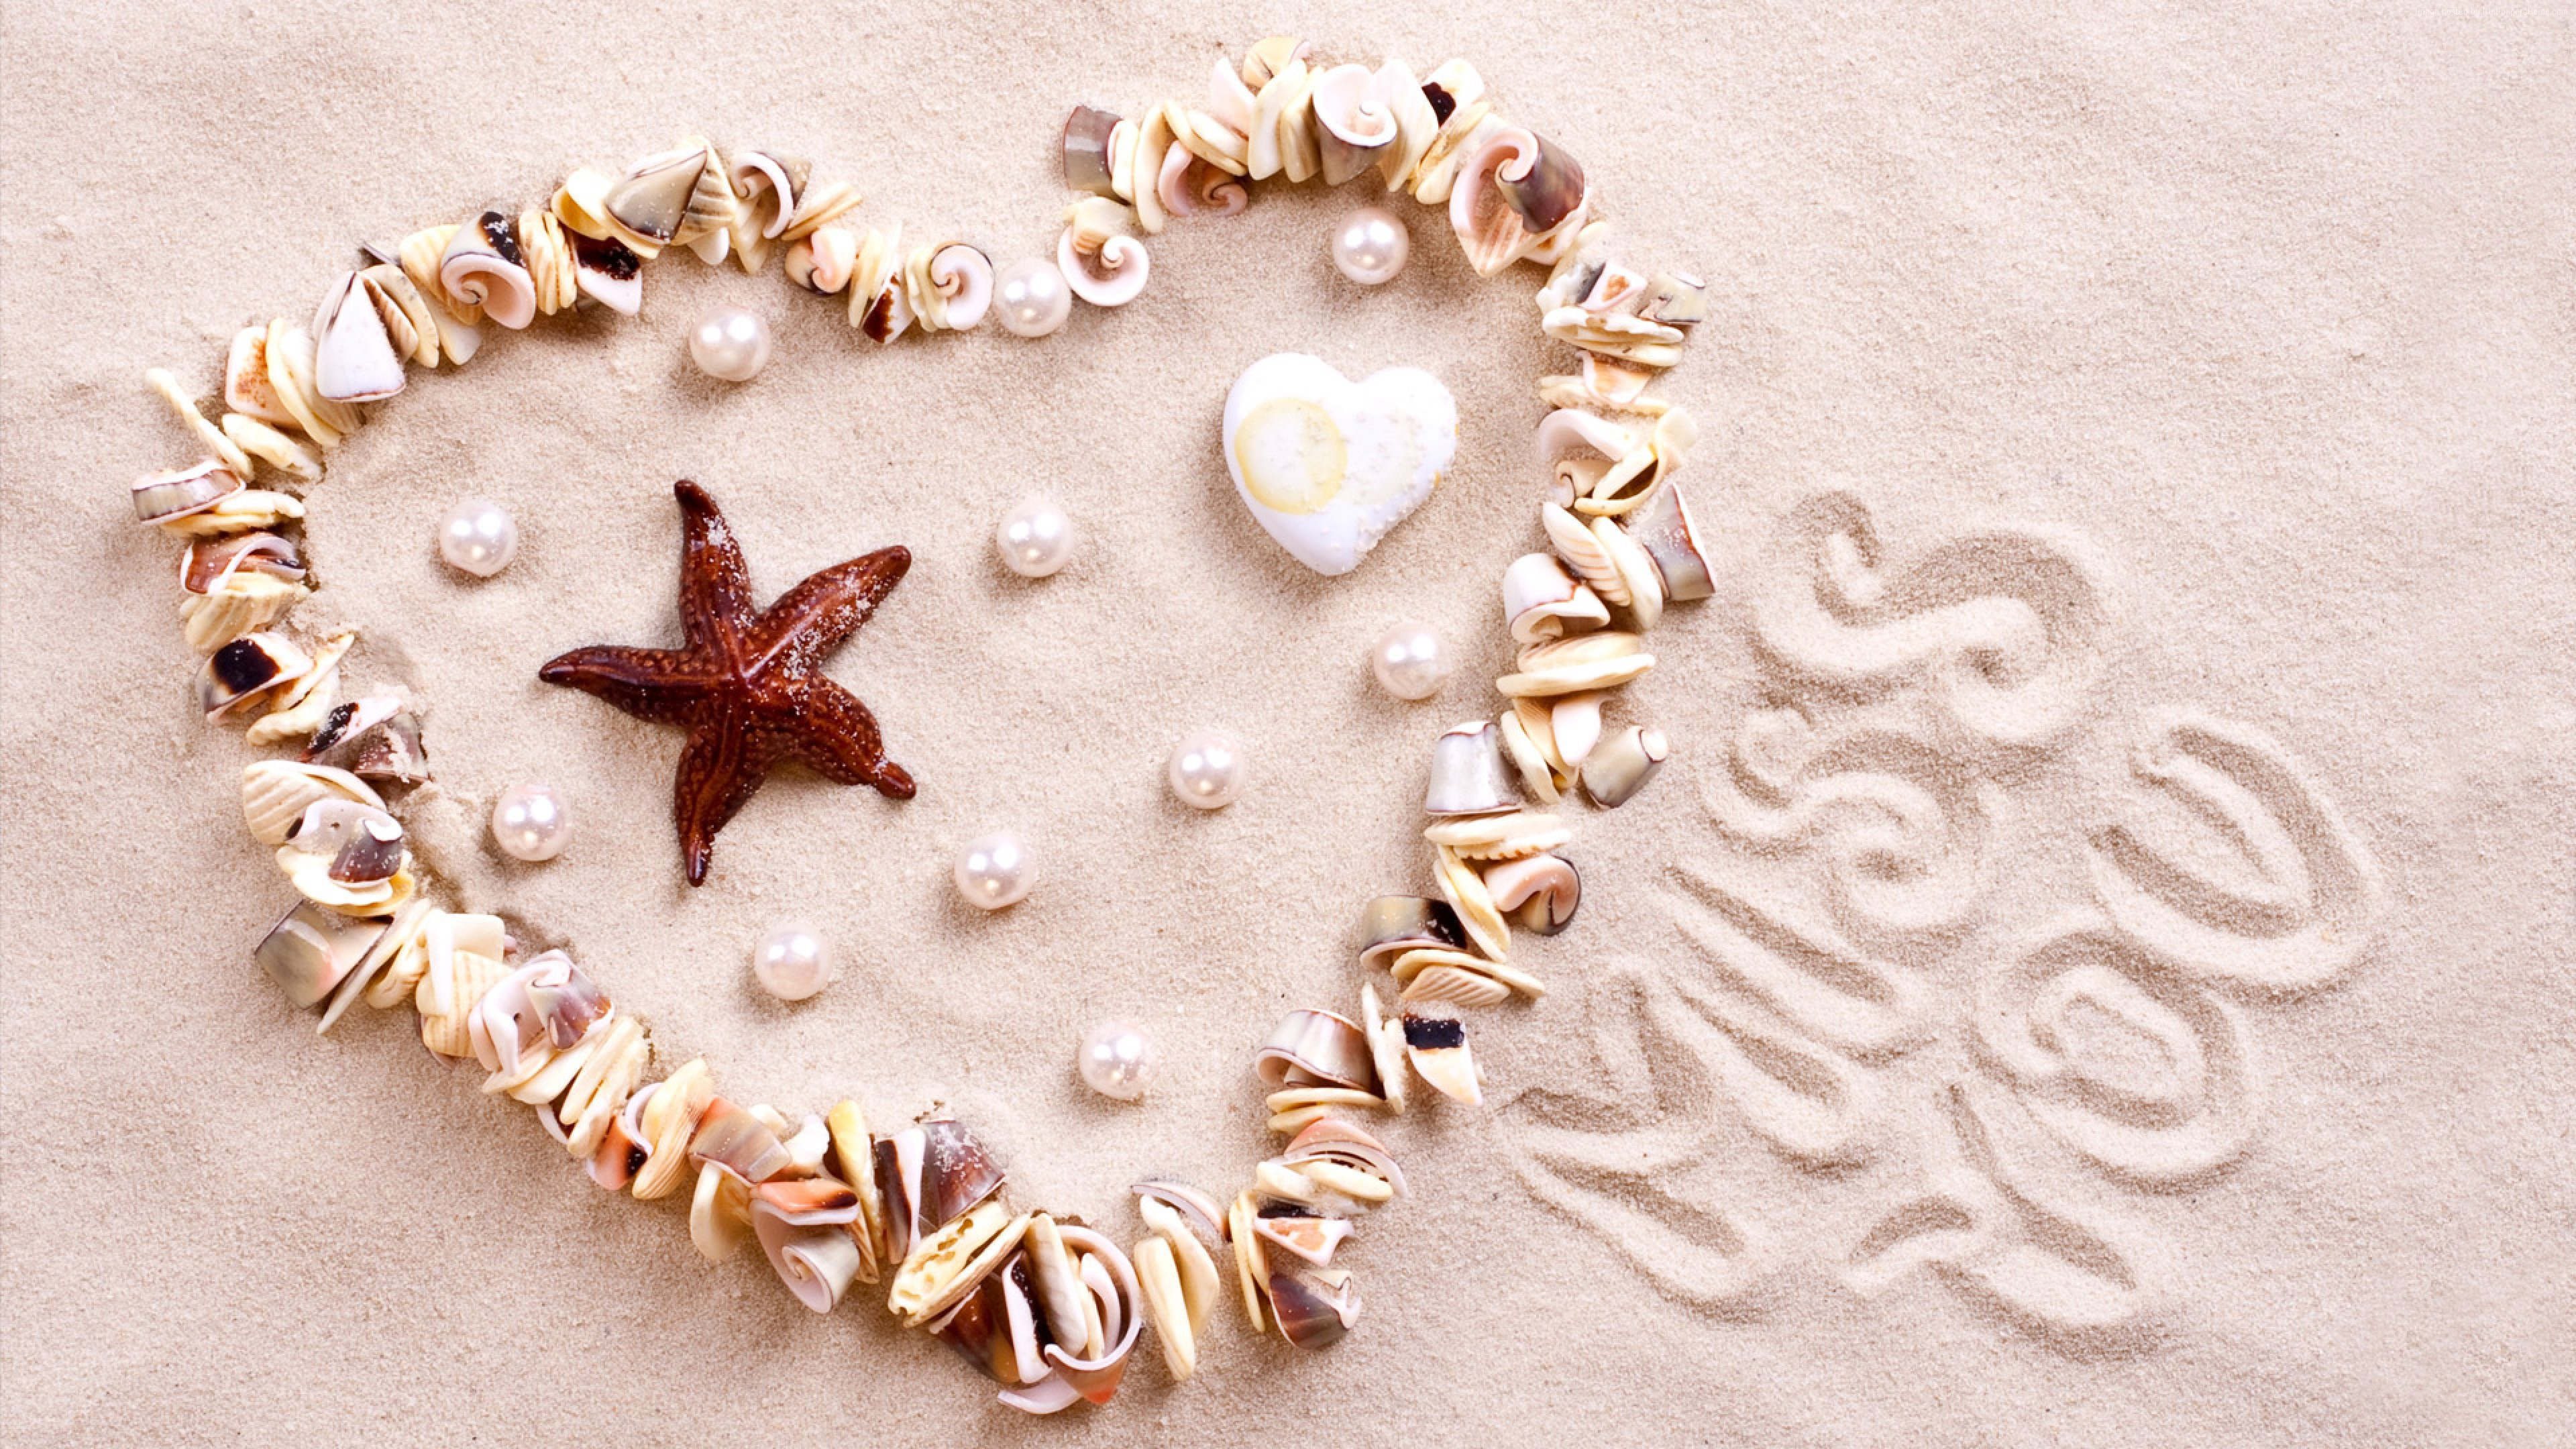 Stock Images love image, heart, starfish, shell, shore, 4k, Stock Images